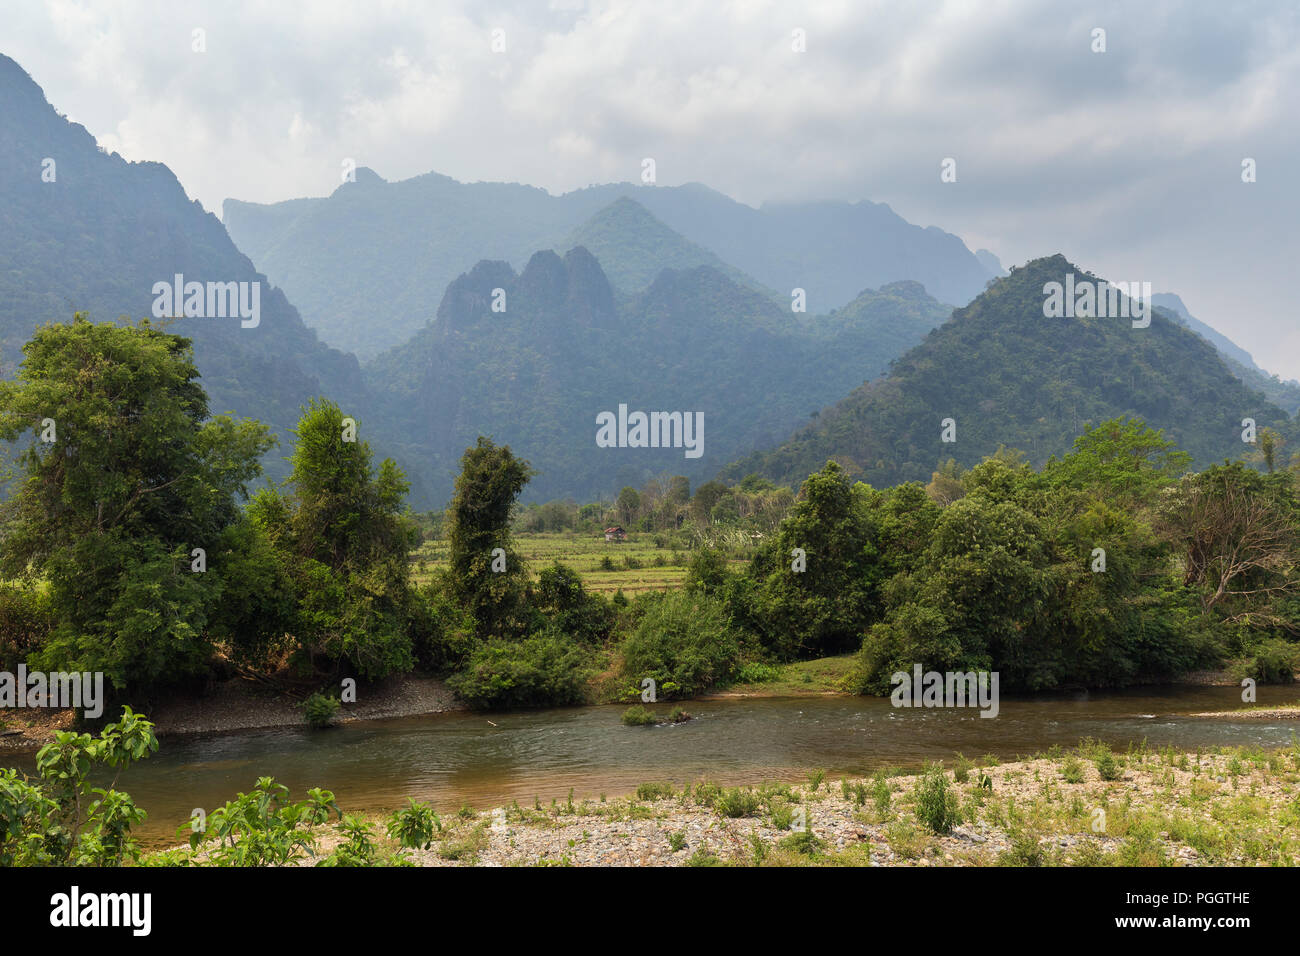 Scenic view of Nam Song River, fields and limestone mountains near Vang Vieng, Vientiane Province, Laos. - Stock Image